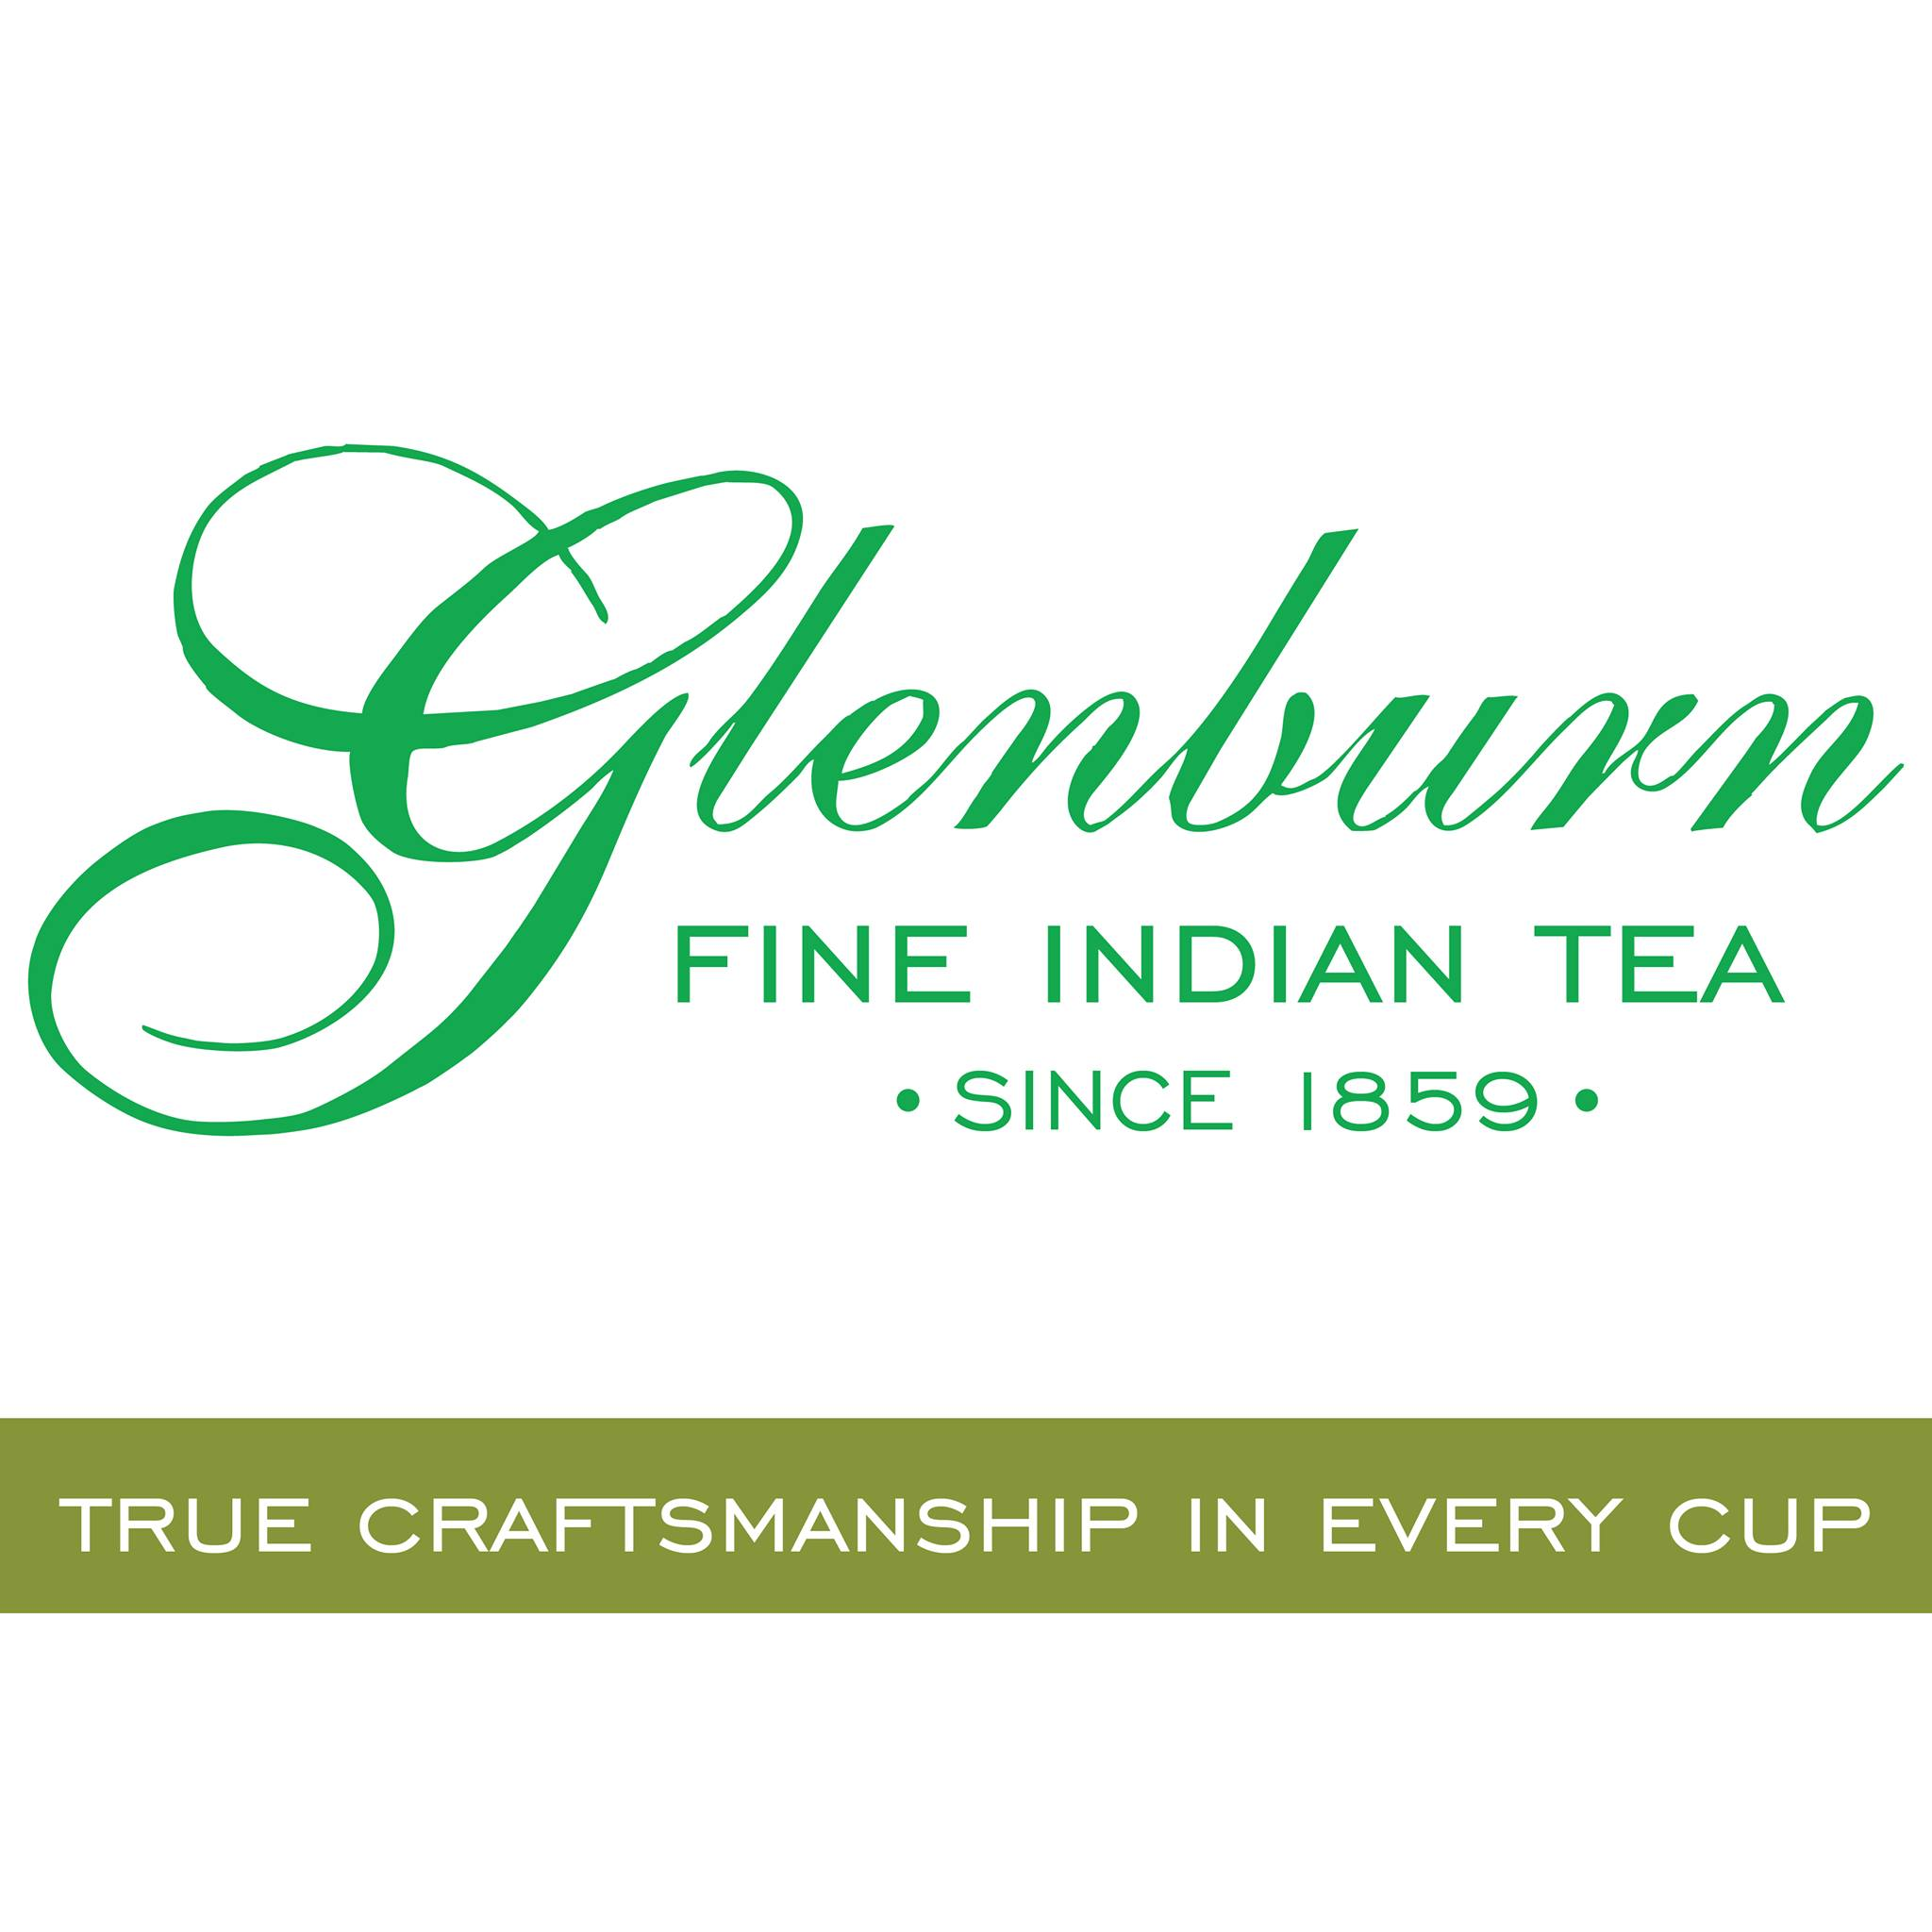 Glenburn Fine Tea